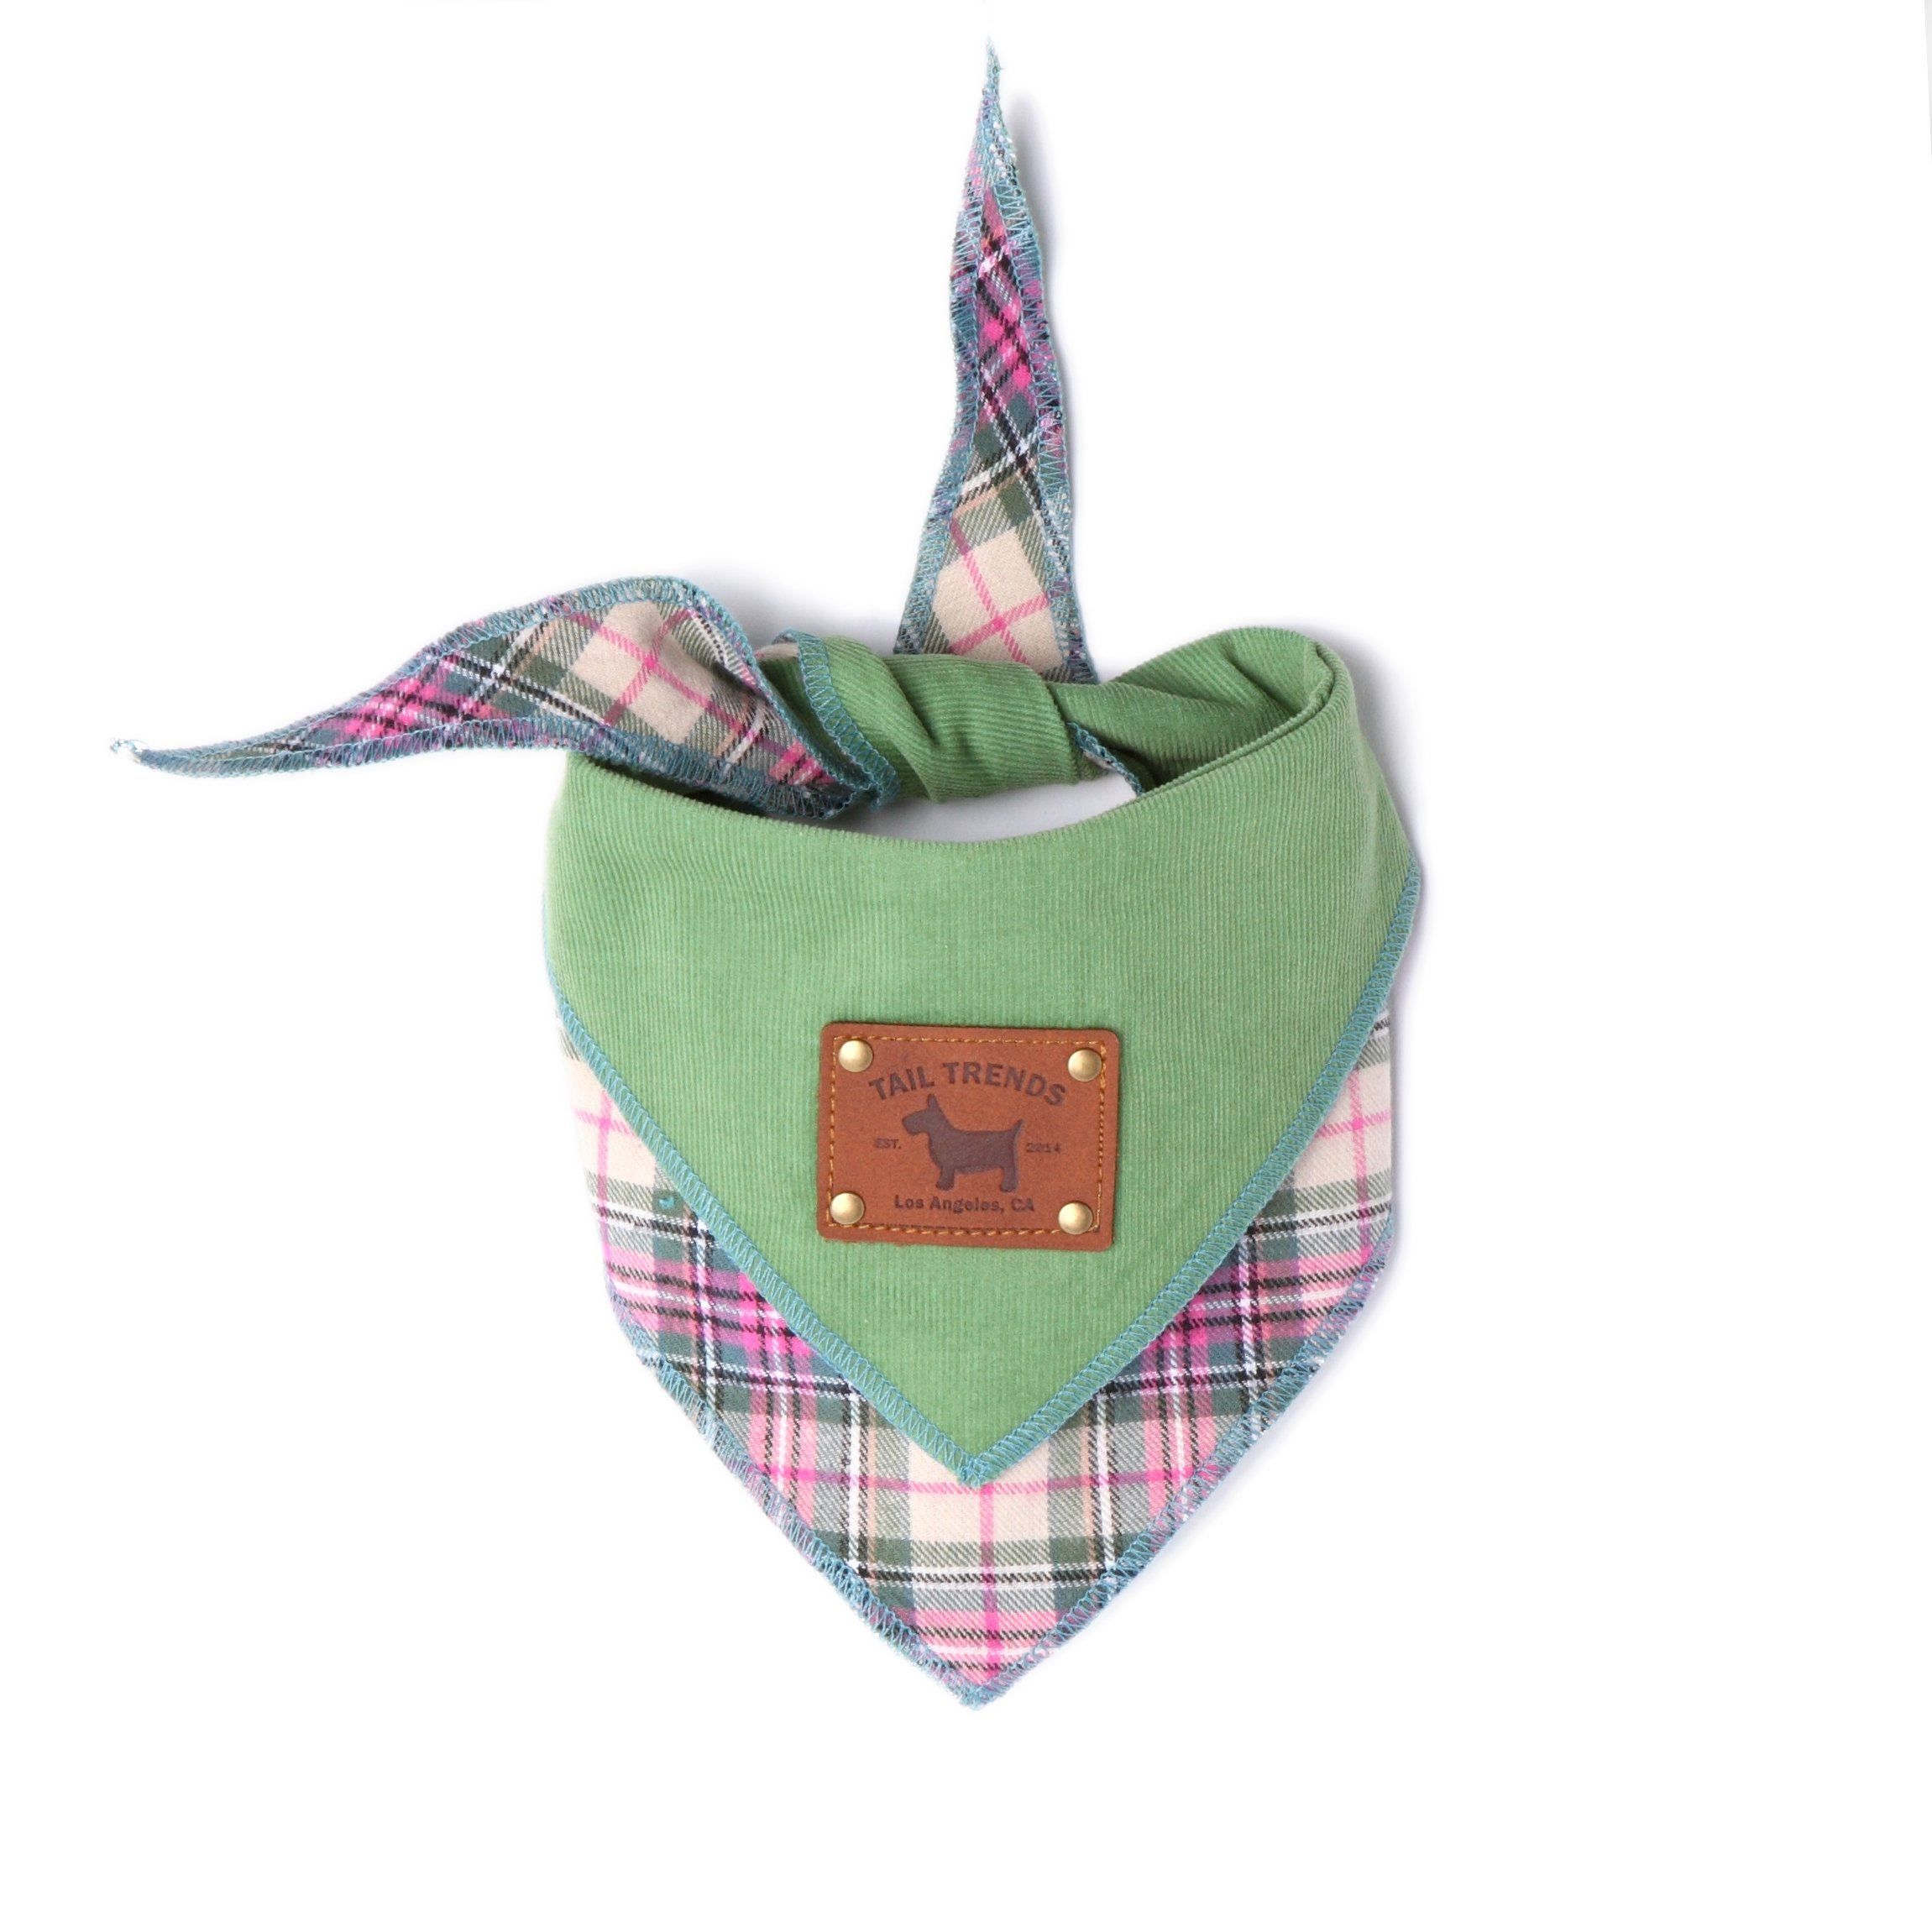 Tail Trends Floral Green Corduroy Reversible Dog Bandanas with Leather Patch for Medium to Large Sized Dogs - 100% Cotton